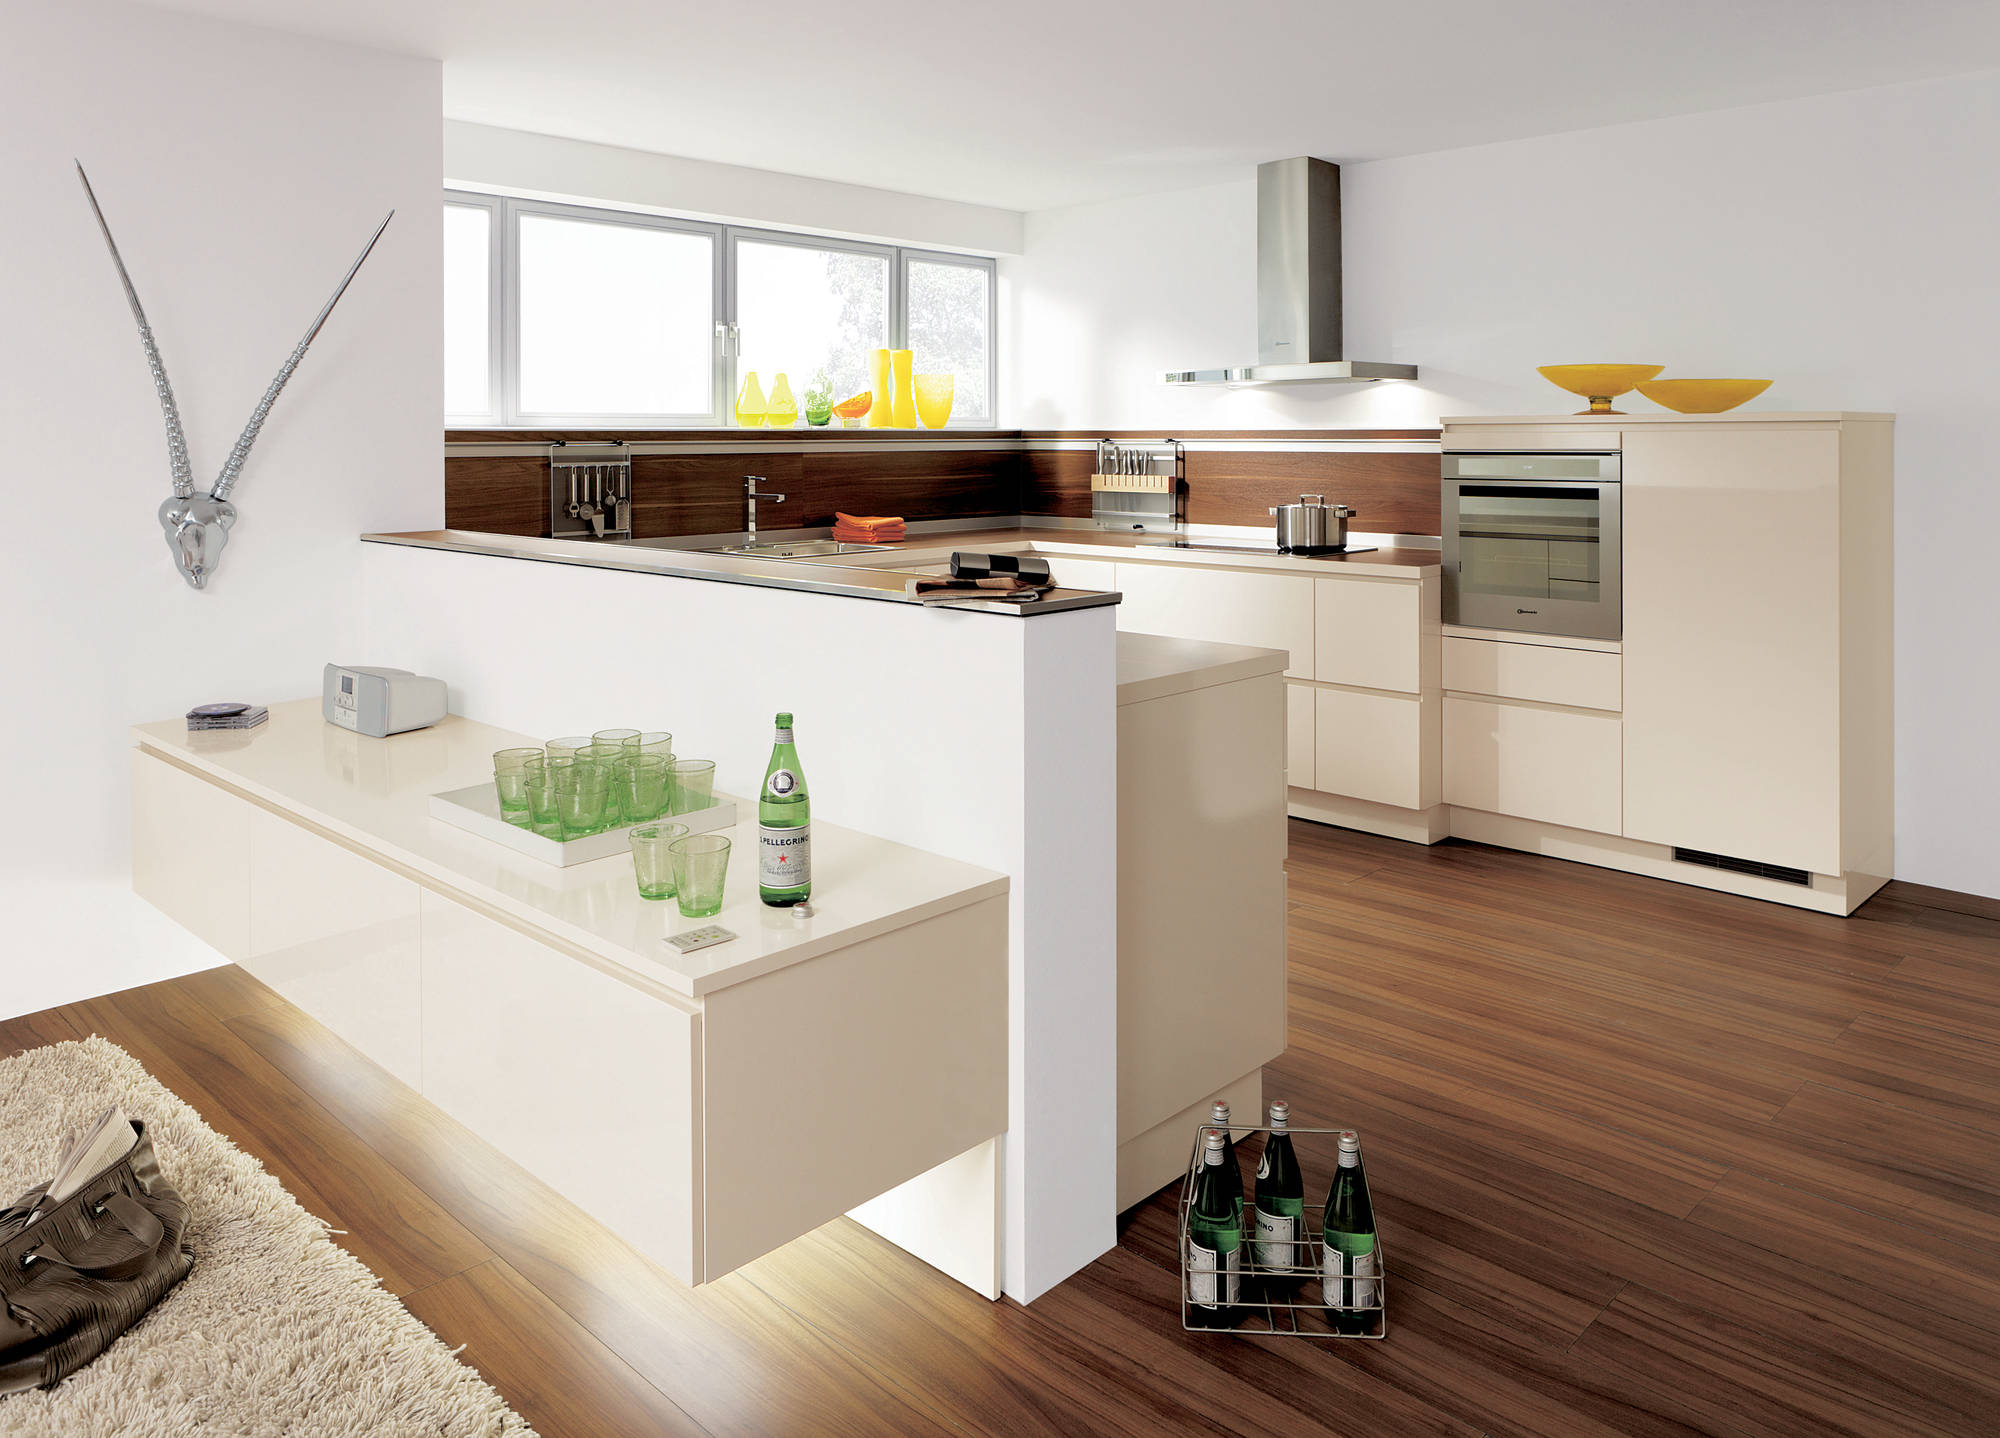 Contemporary style kitchen with multi-level kitchen counter